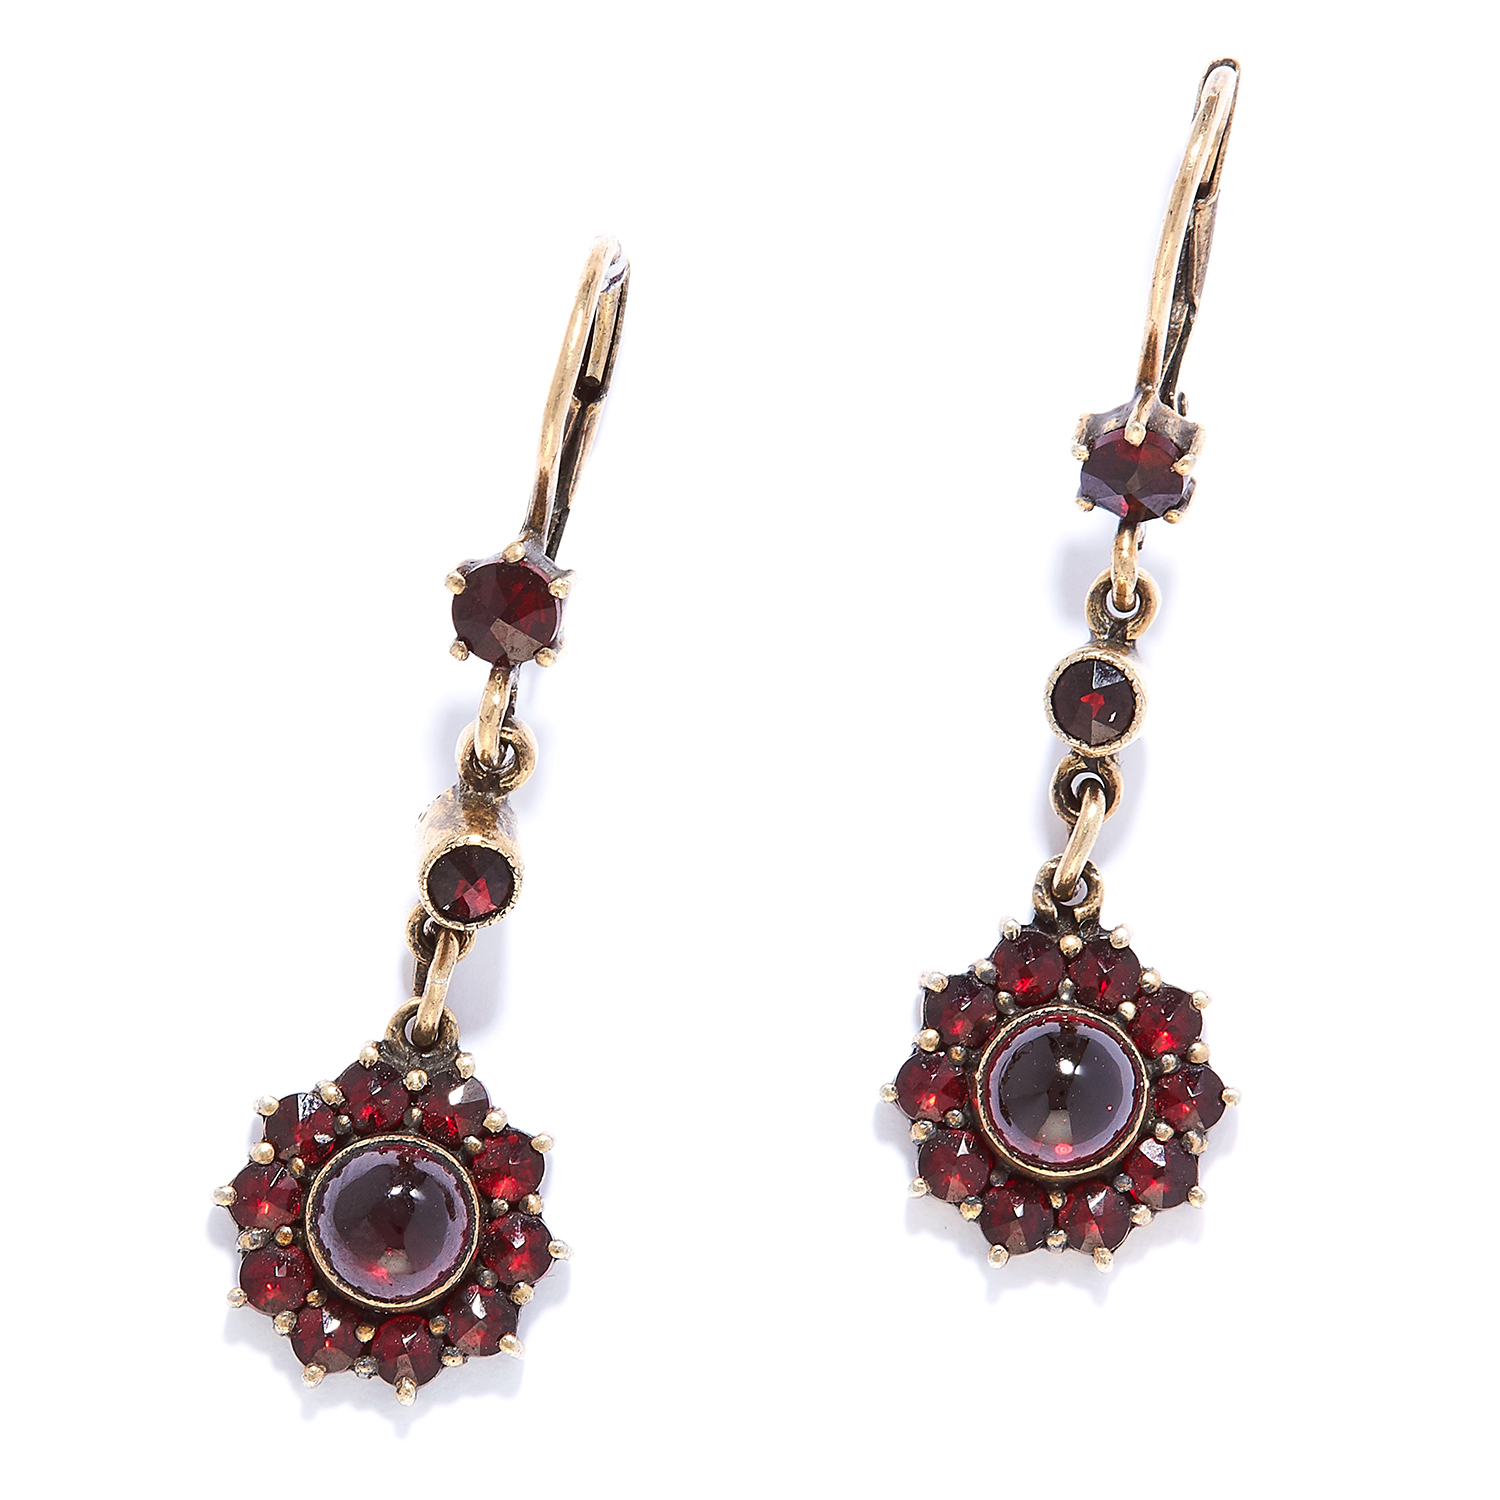 ANTIQUE GARNET DROP EARRINGS in yellow gold, set with rose and cabochon garnets in foliate motif,